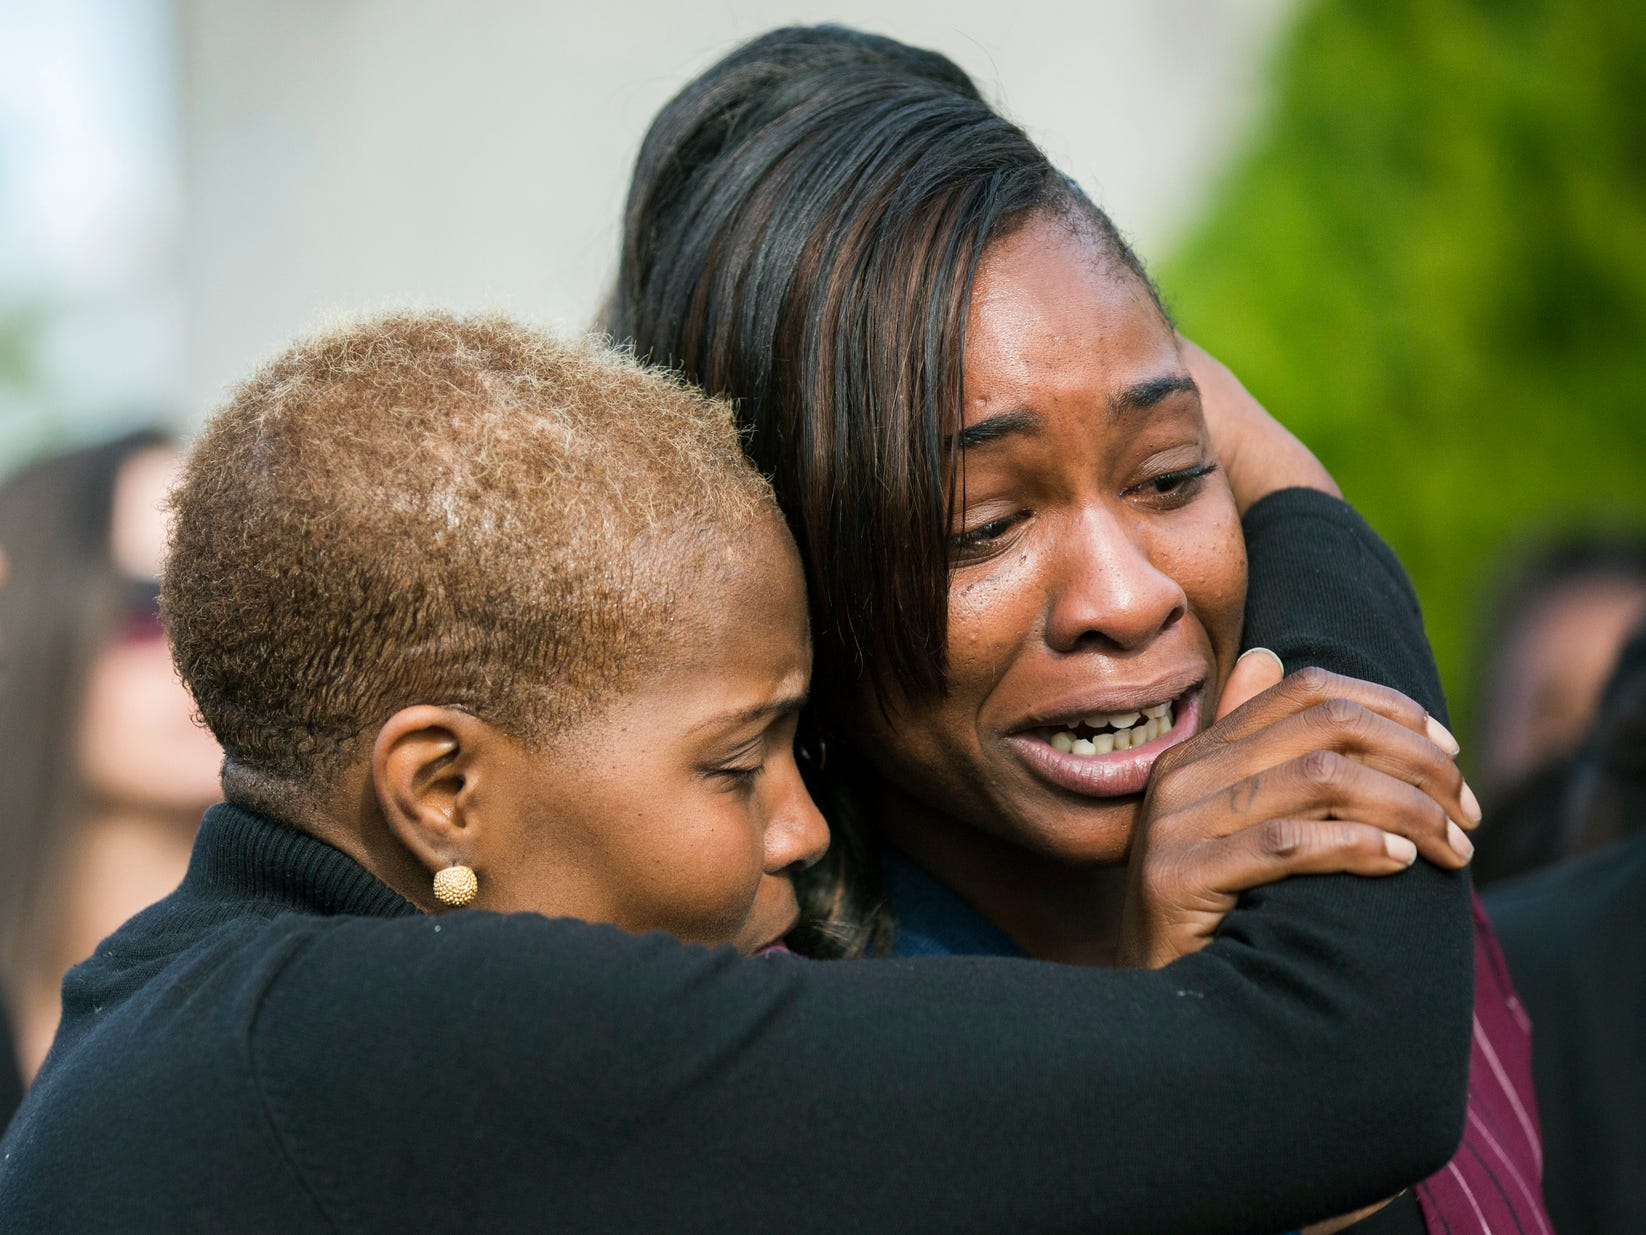 LaPorsha Washington, right, is embraced as she cries while the casket of her daughter Jazmine Barnes is placed inside a funeral hearse after a memorial service on Jan. 8, 2019, at The Community of Faith Church in Houston. Jazmine was fatally shot on Dec. 30, 2018, while in a car with her family during an attack that investigators say appears to be a case of mistaken identity.